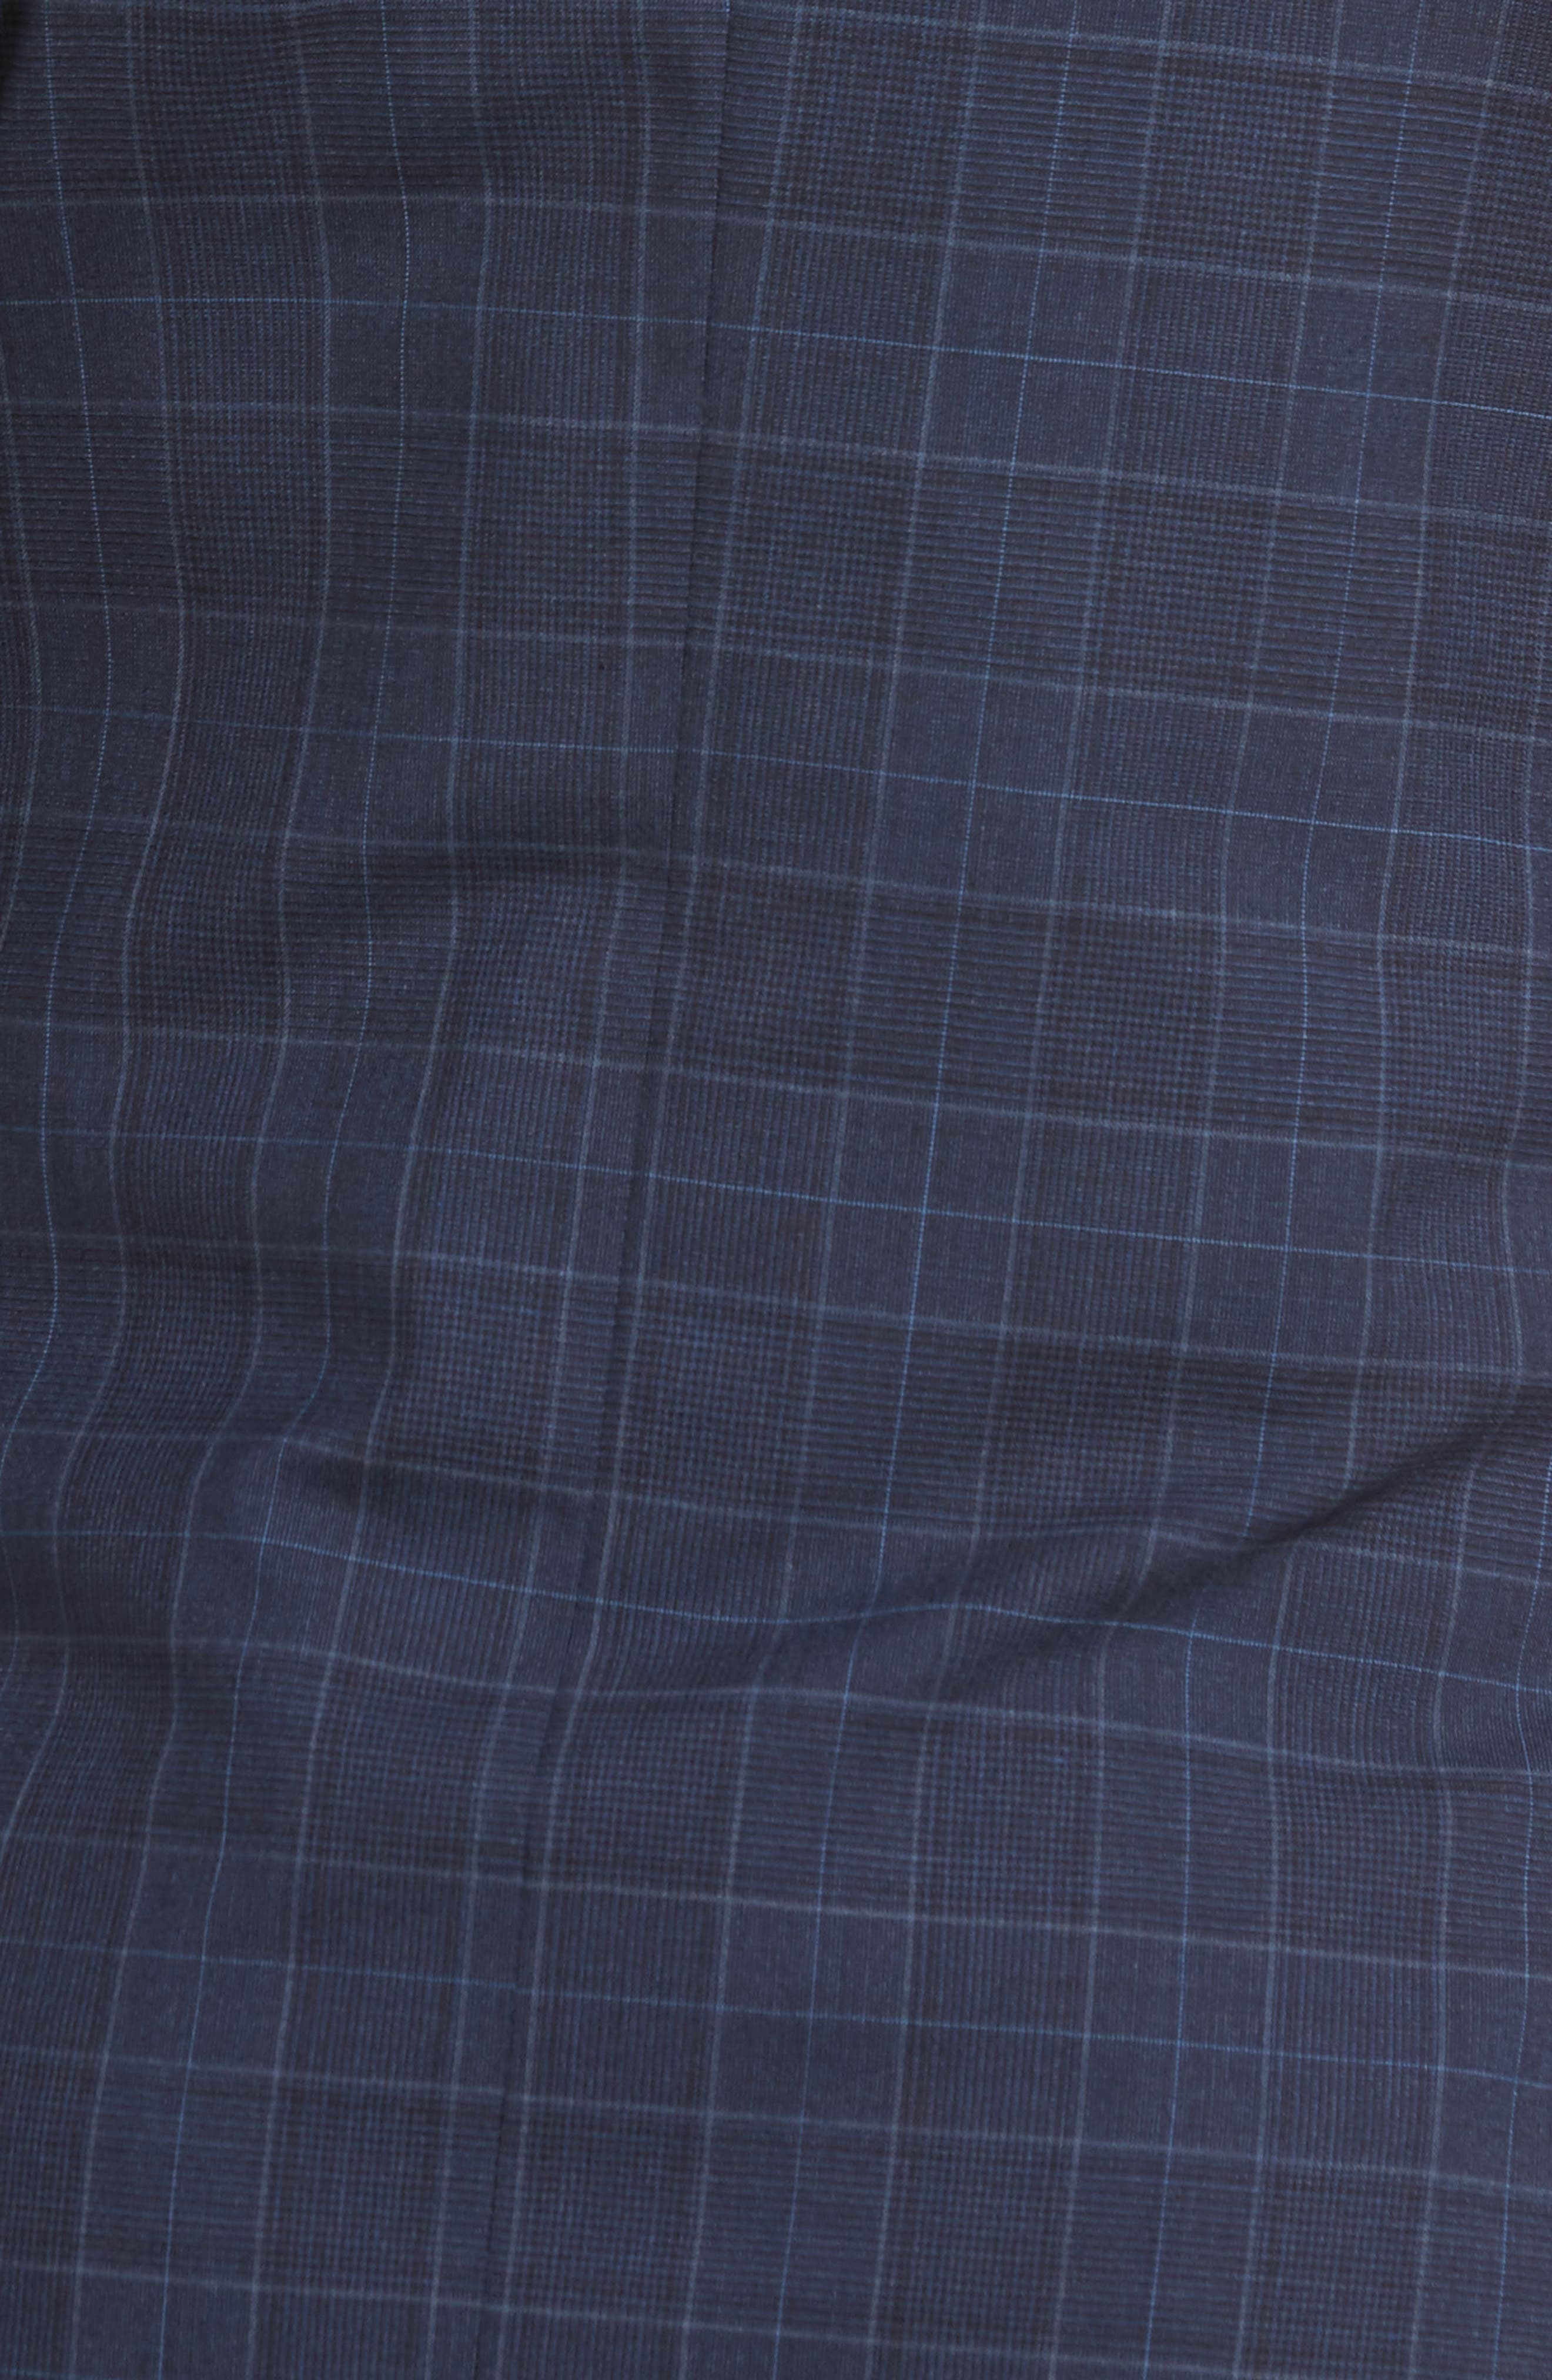 HICKEY FREEMAN,                             Classic B Fit Plaid Wool Suit,                             Alternate thumbnail 7, color,                             400